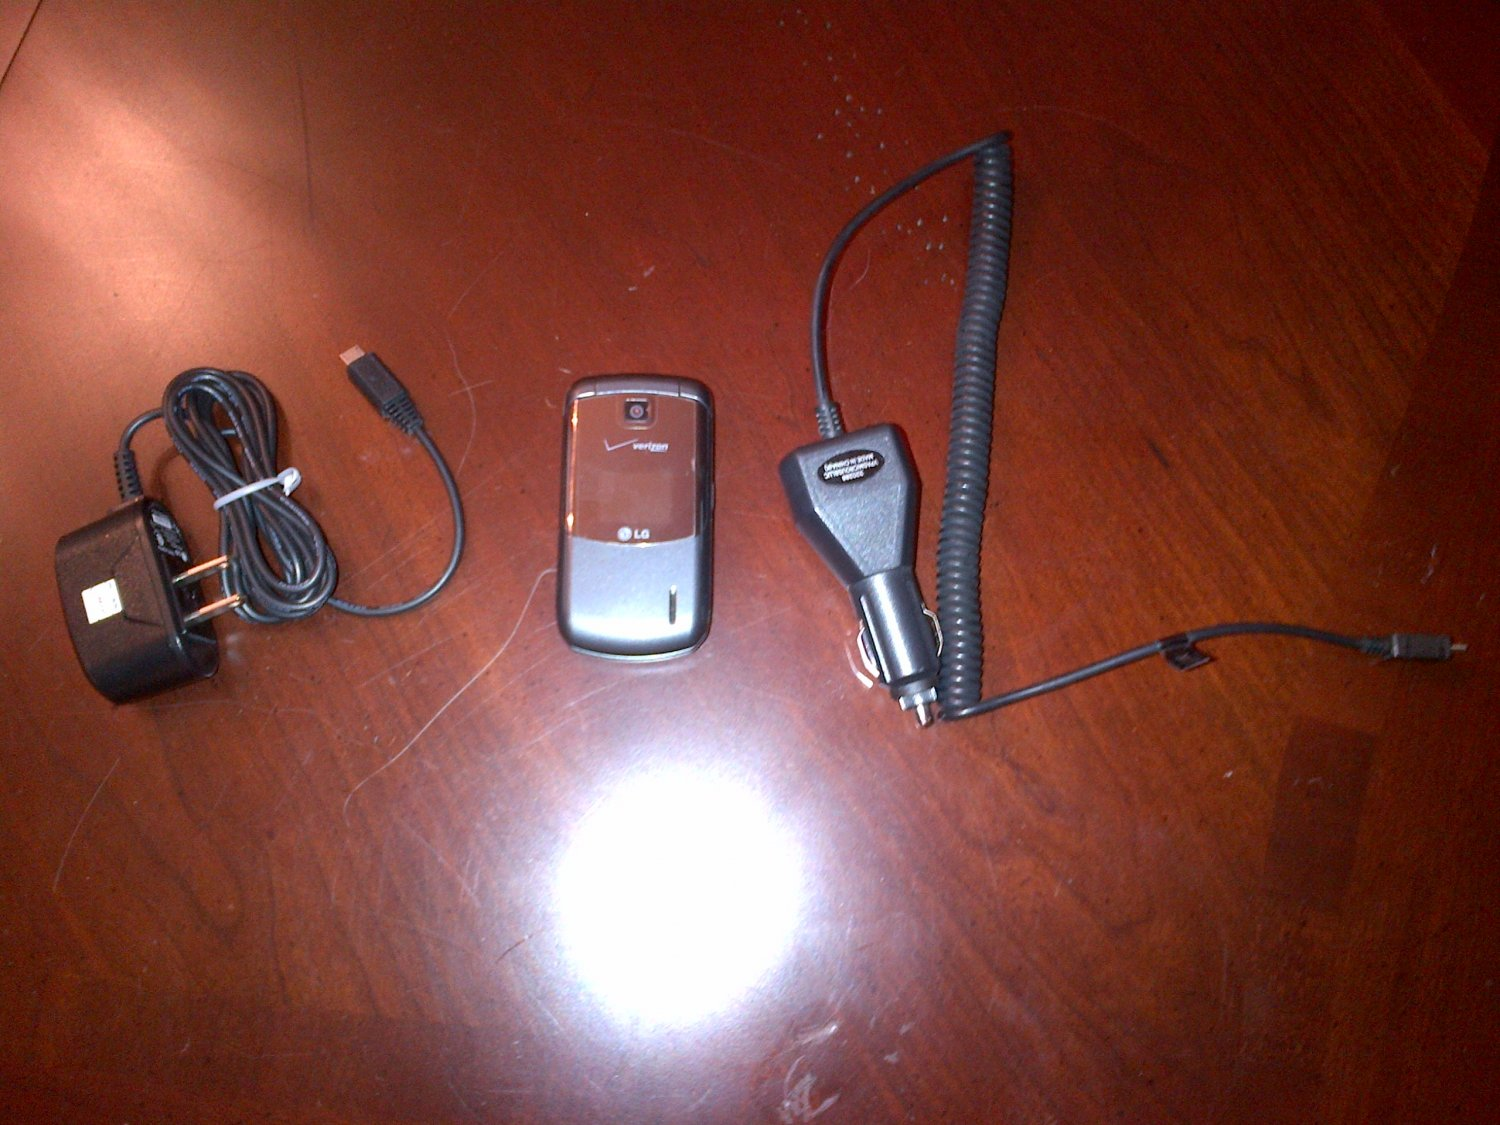 LG Accolade VX5600 (Verizon) Cellphone (car charger included)